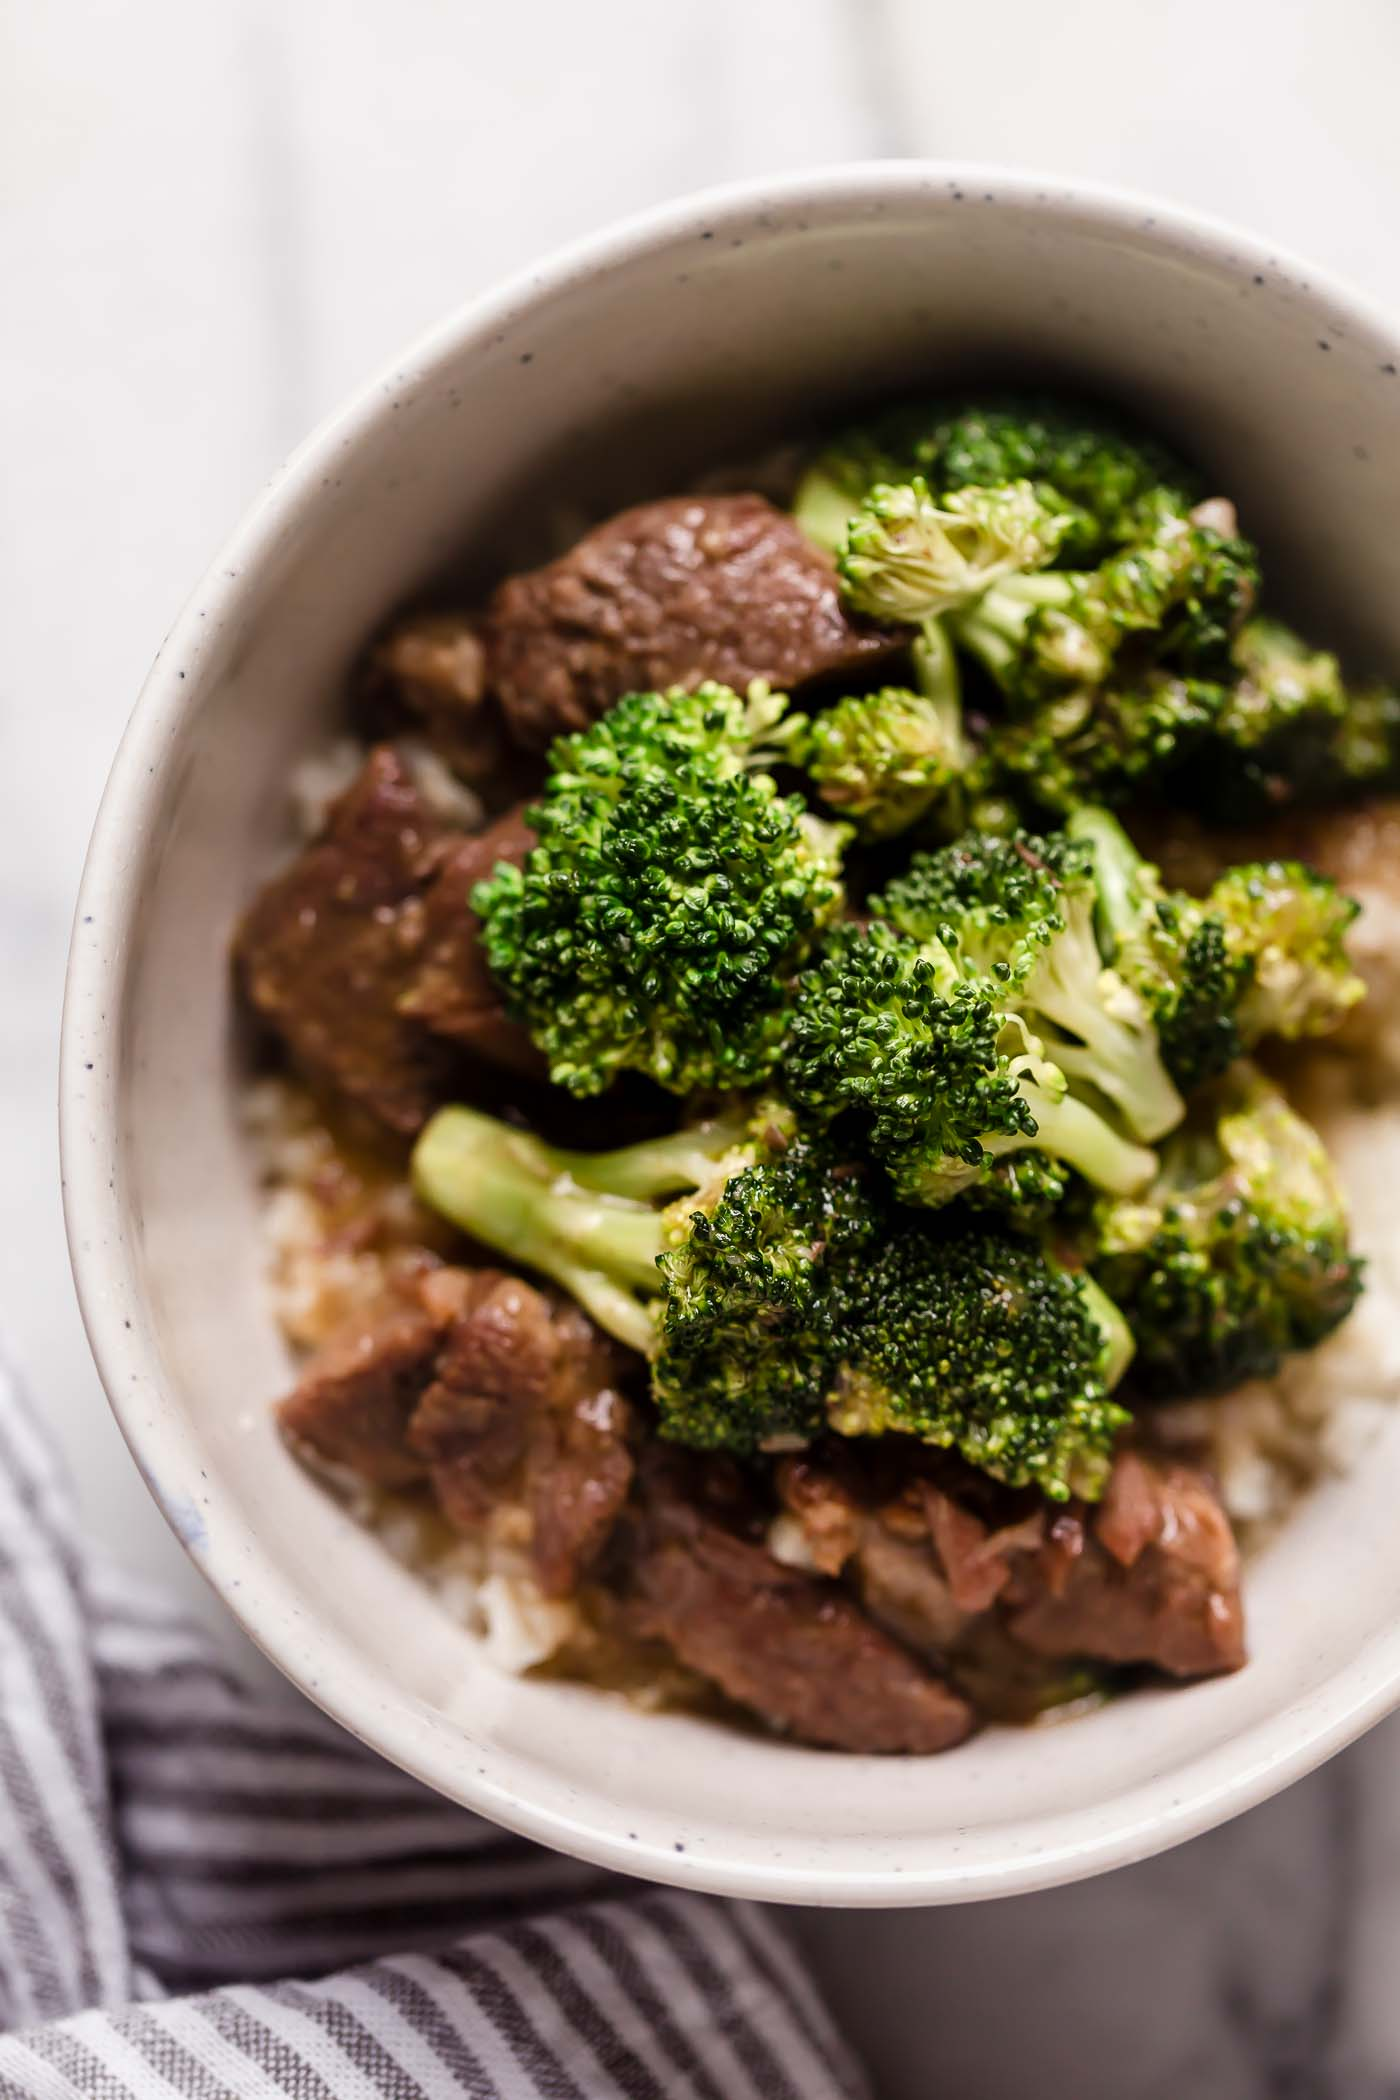 Instant Pot Beef Broccoli with Rice in a ceramic bowl on top of a marble counter